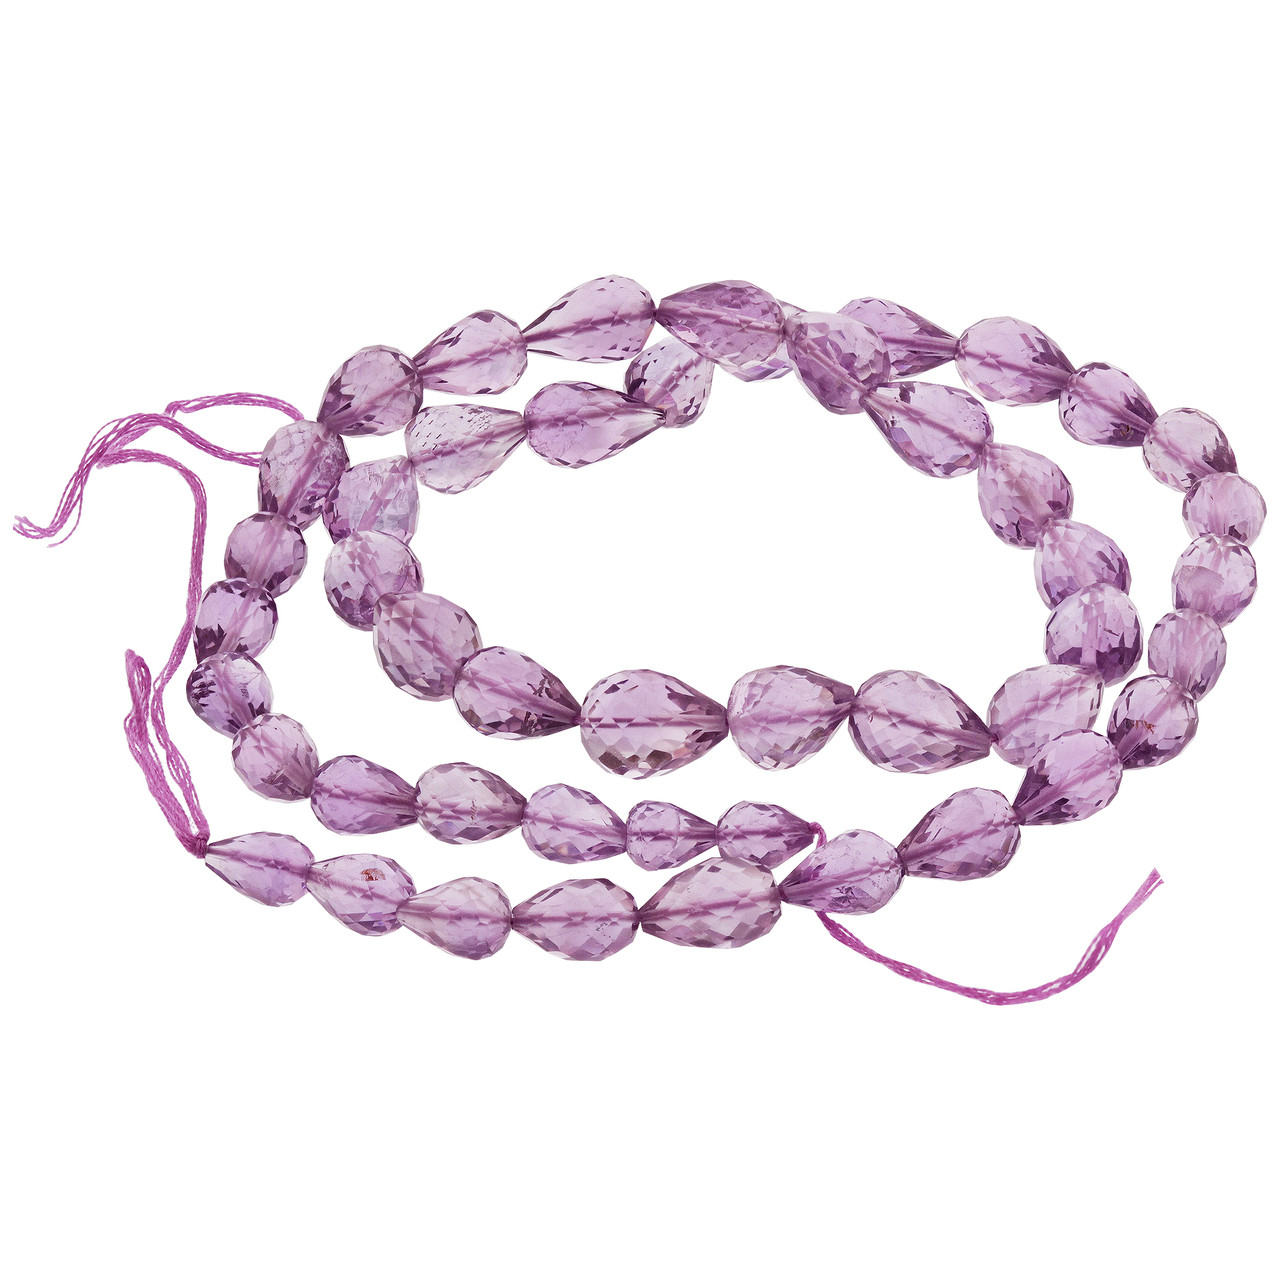 Faceted Pink Amethyst Straight Drill Drop Beads for Jewelry Making